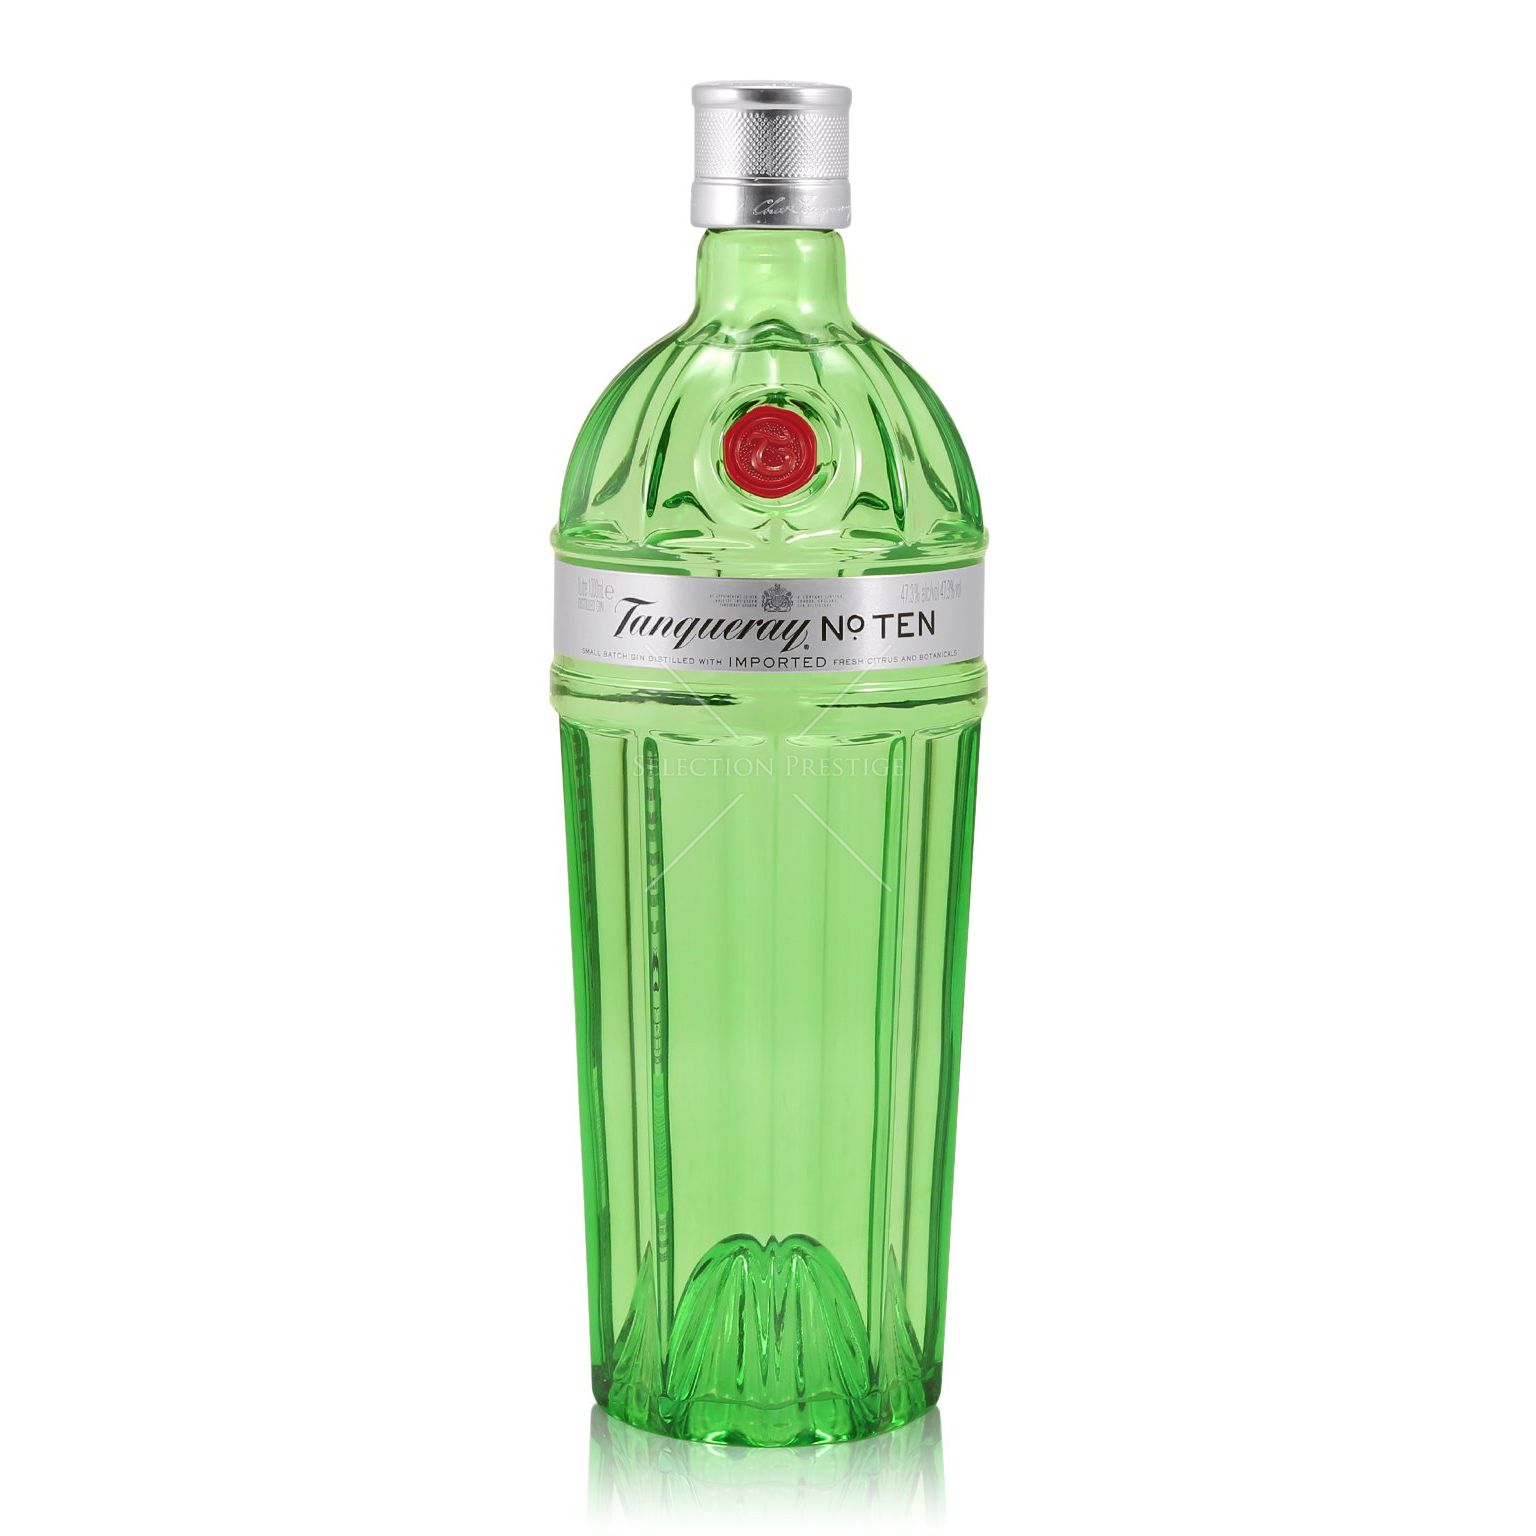 TANQUERAY DRY GIN No 10 100cl